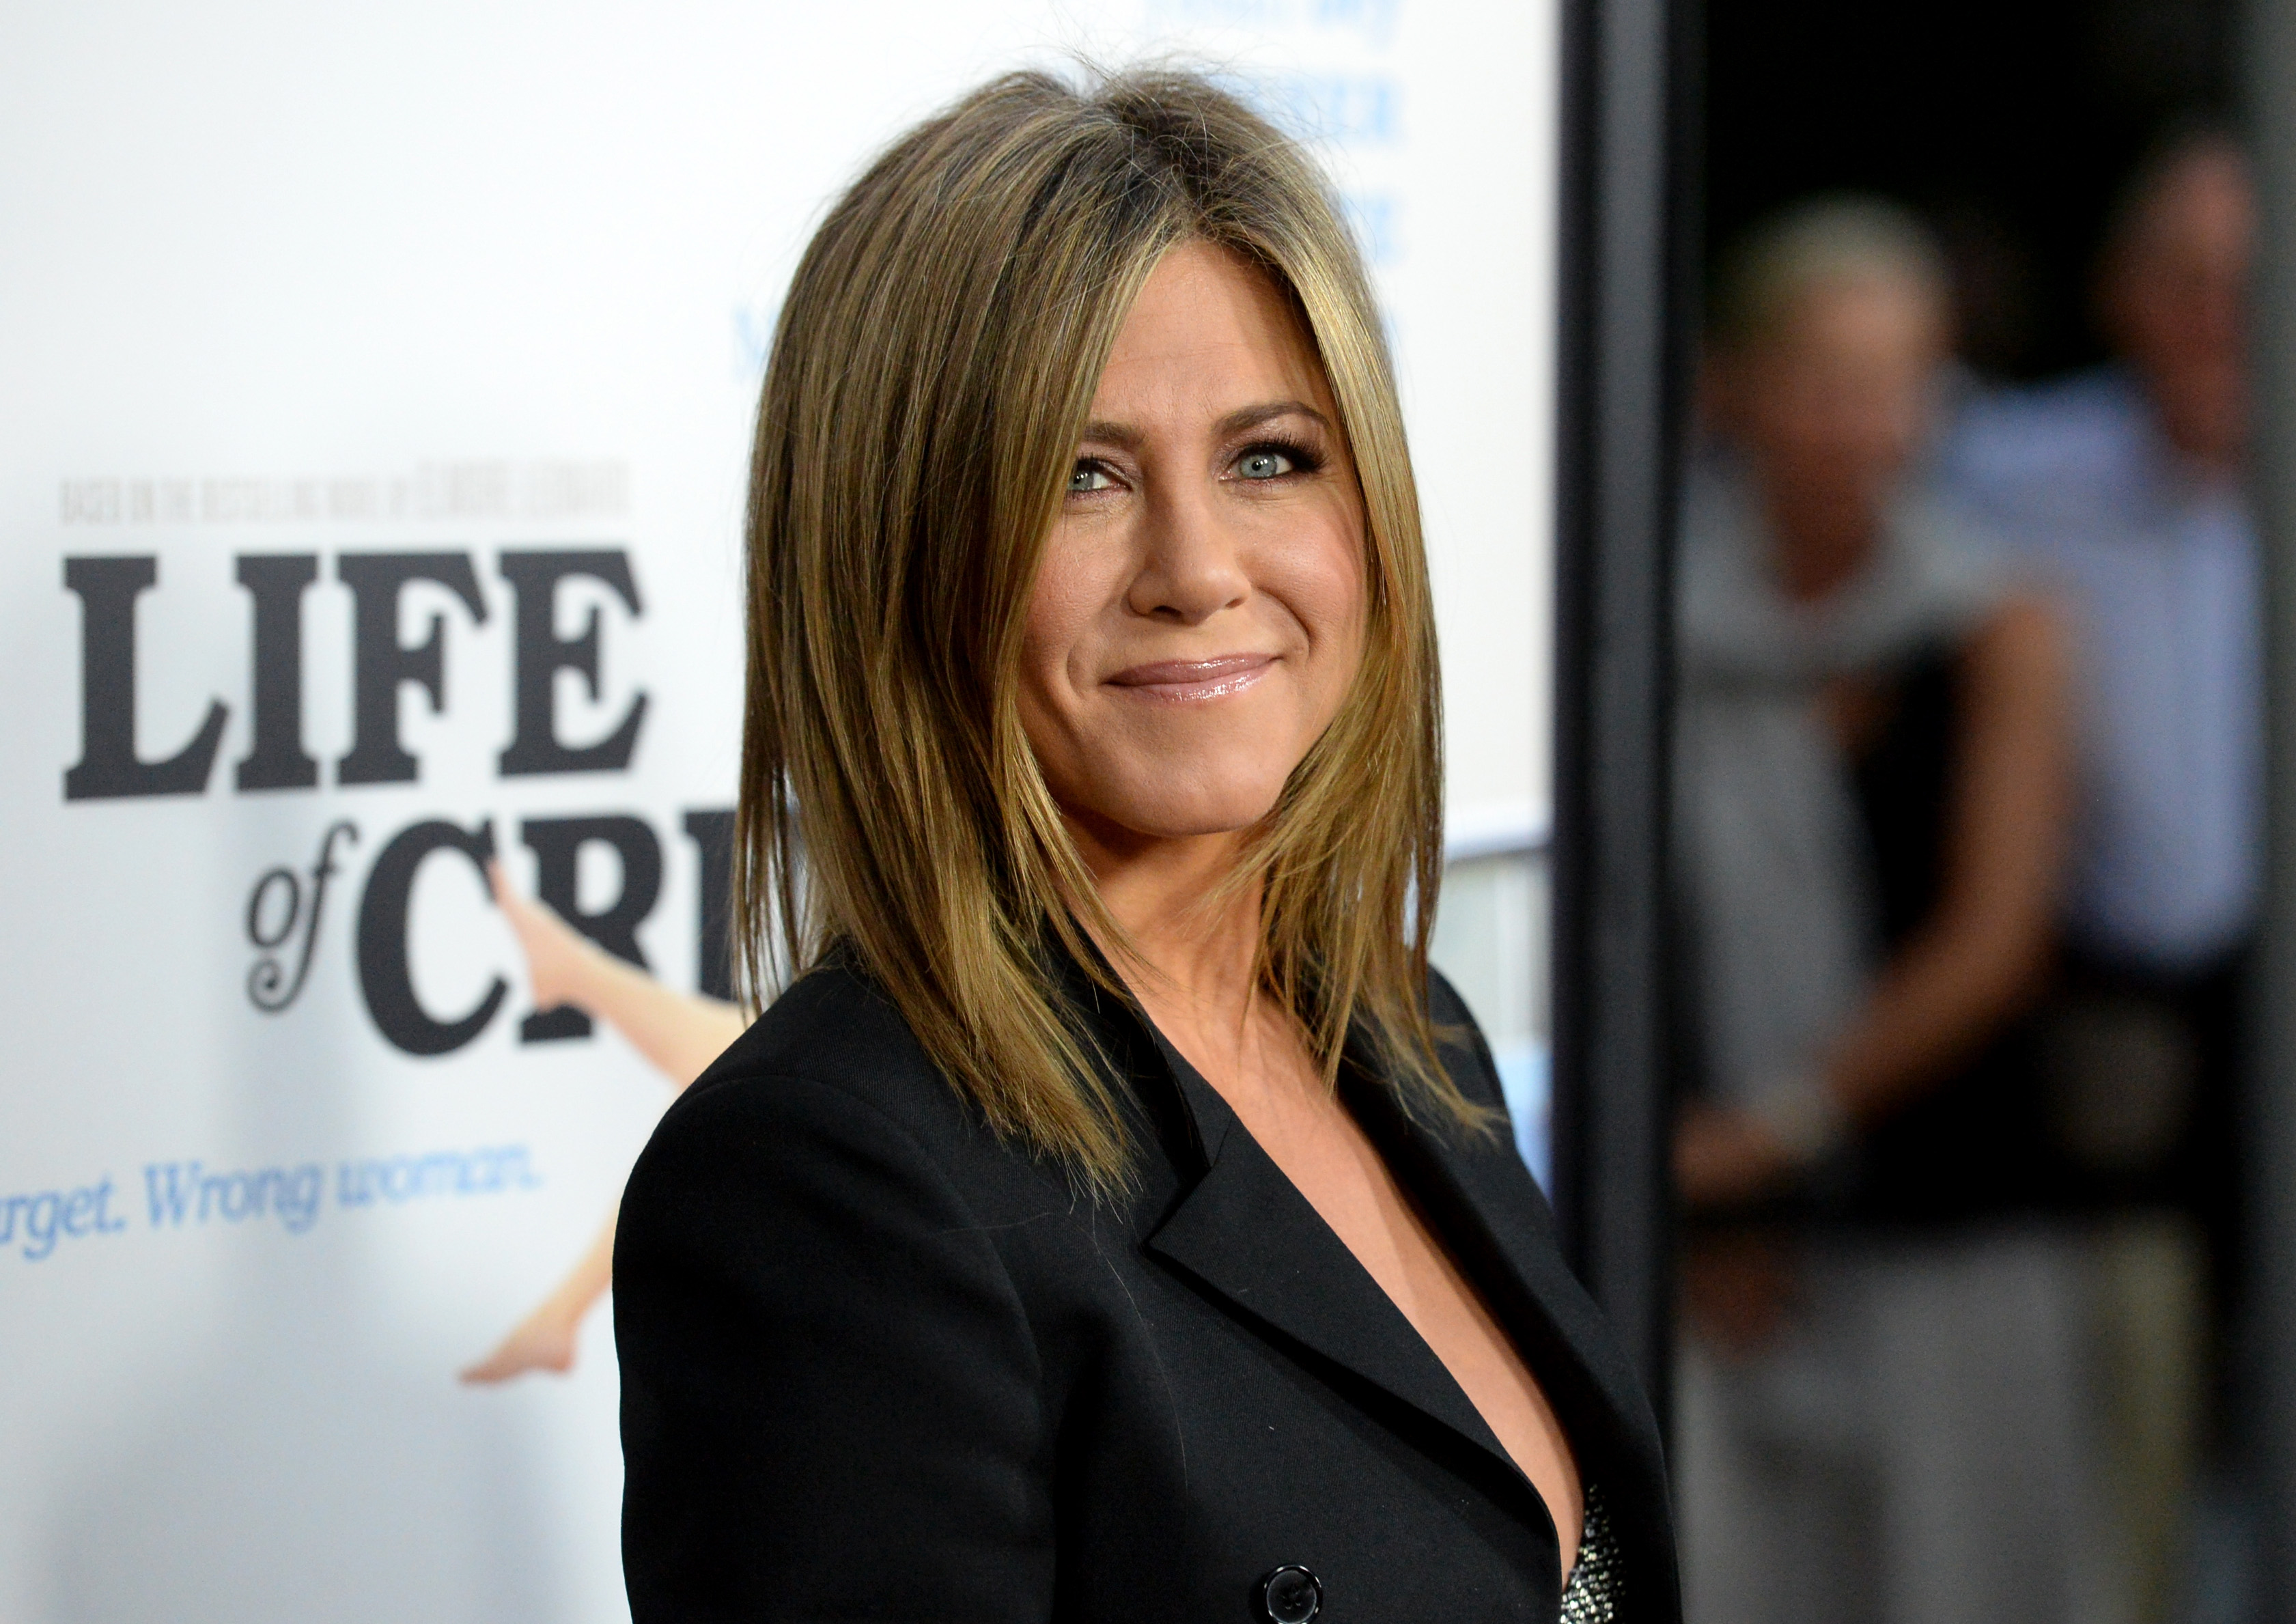 """HOLLYWOOD, CA - AUGUST 27:  Actress Jennifer Aniston attends the premiere of Lionsgate and Roadside Attractions' """"Life of Crime"""" at ArcLight Cinemas on August 27, 2014 in Hollywood, California.  (Photo by Jason Merritt/Getty Images)"""